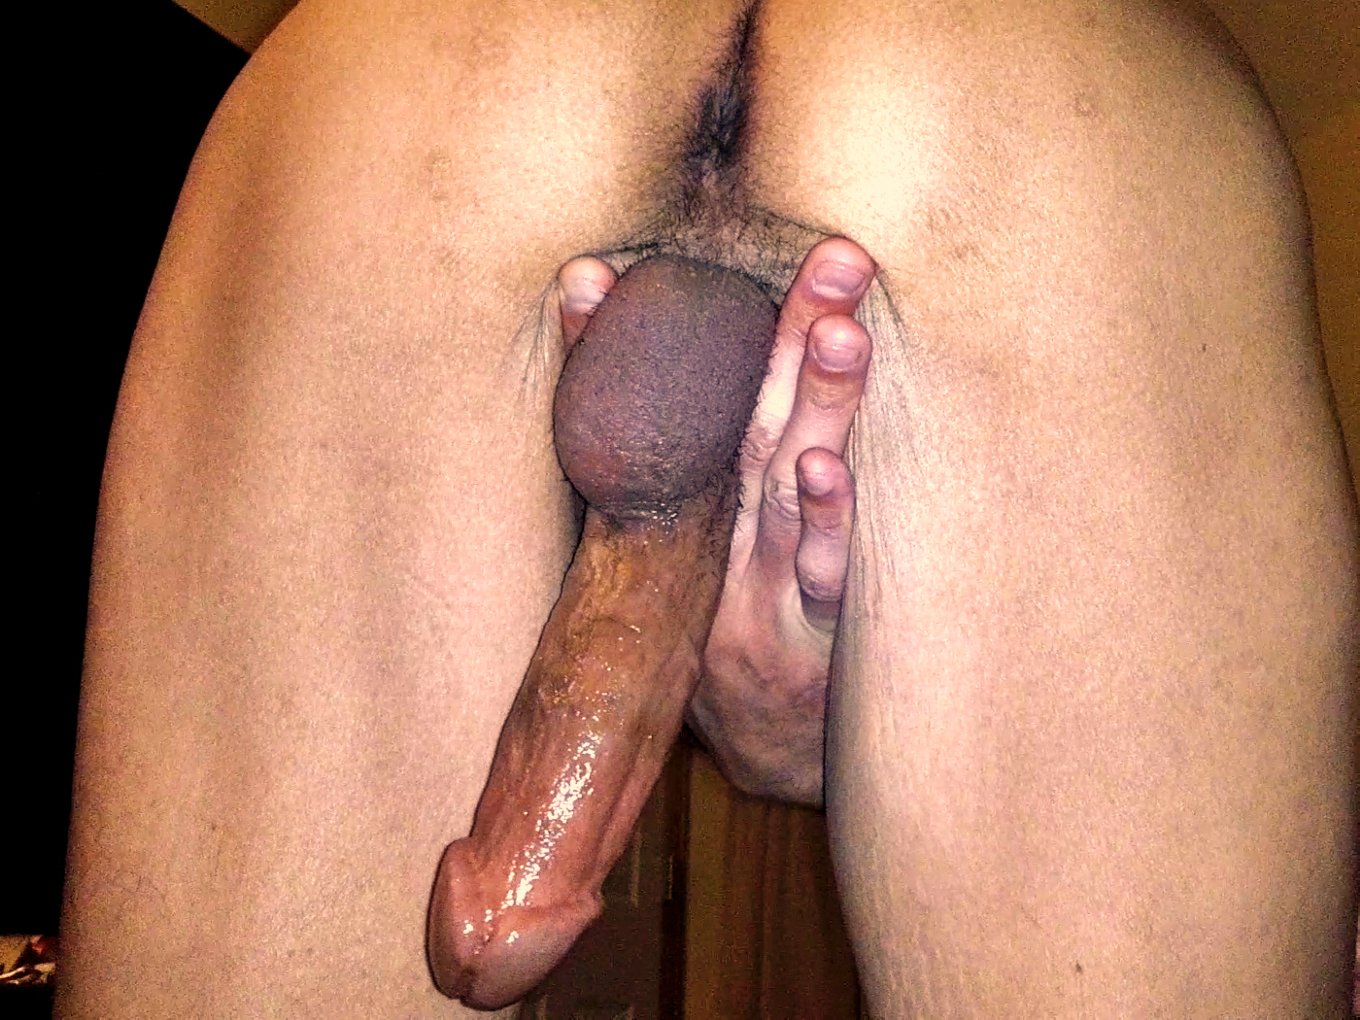 Big Hard Cock and Ass From Behind